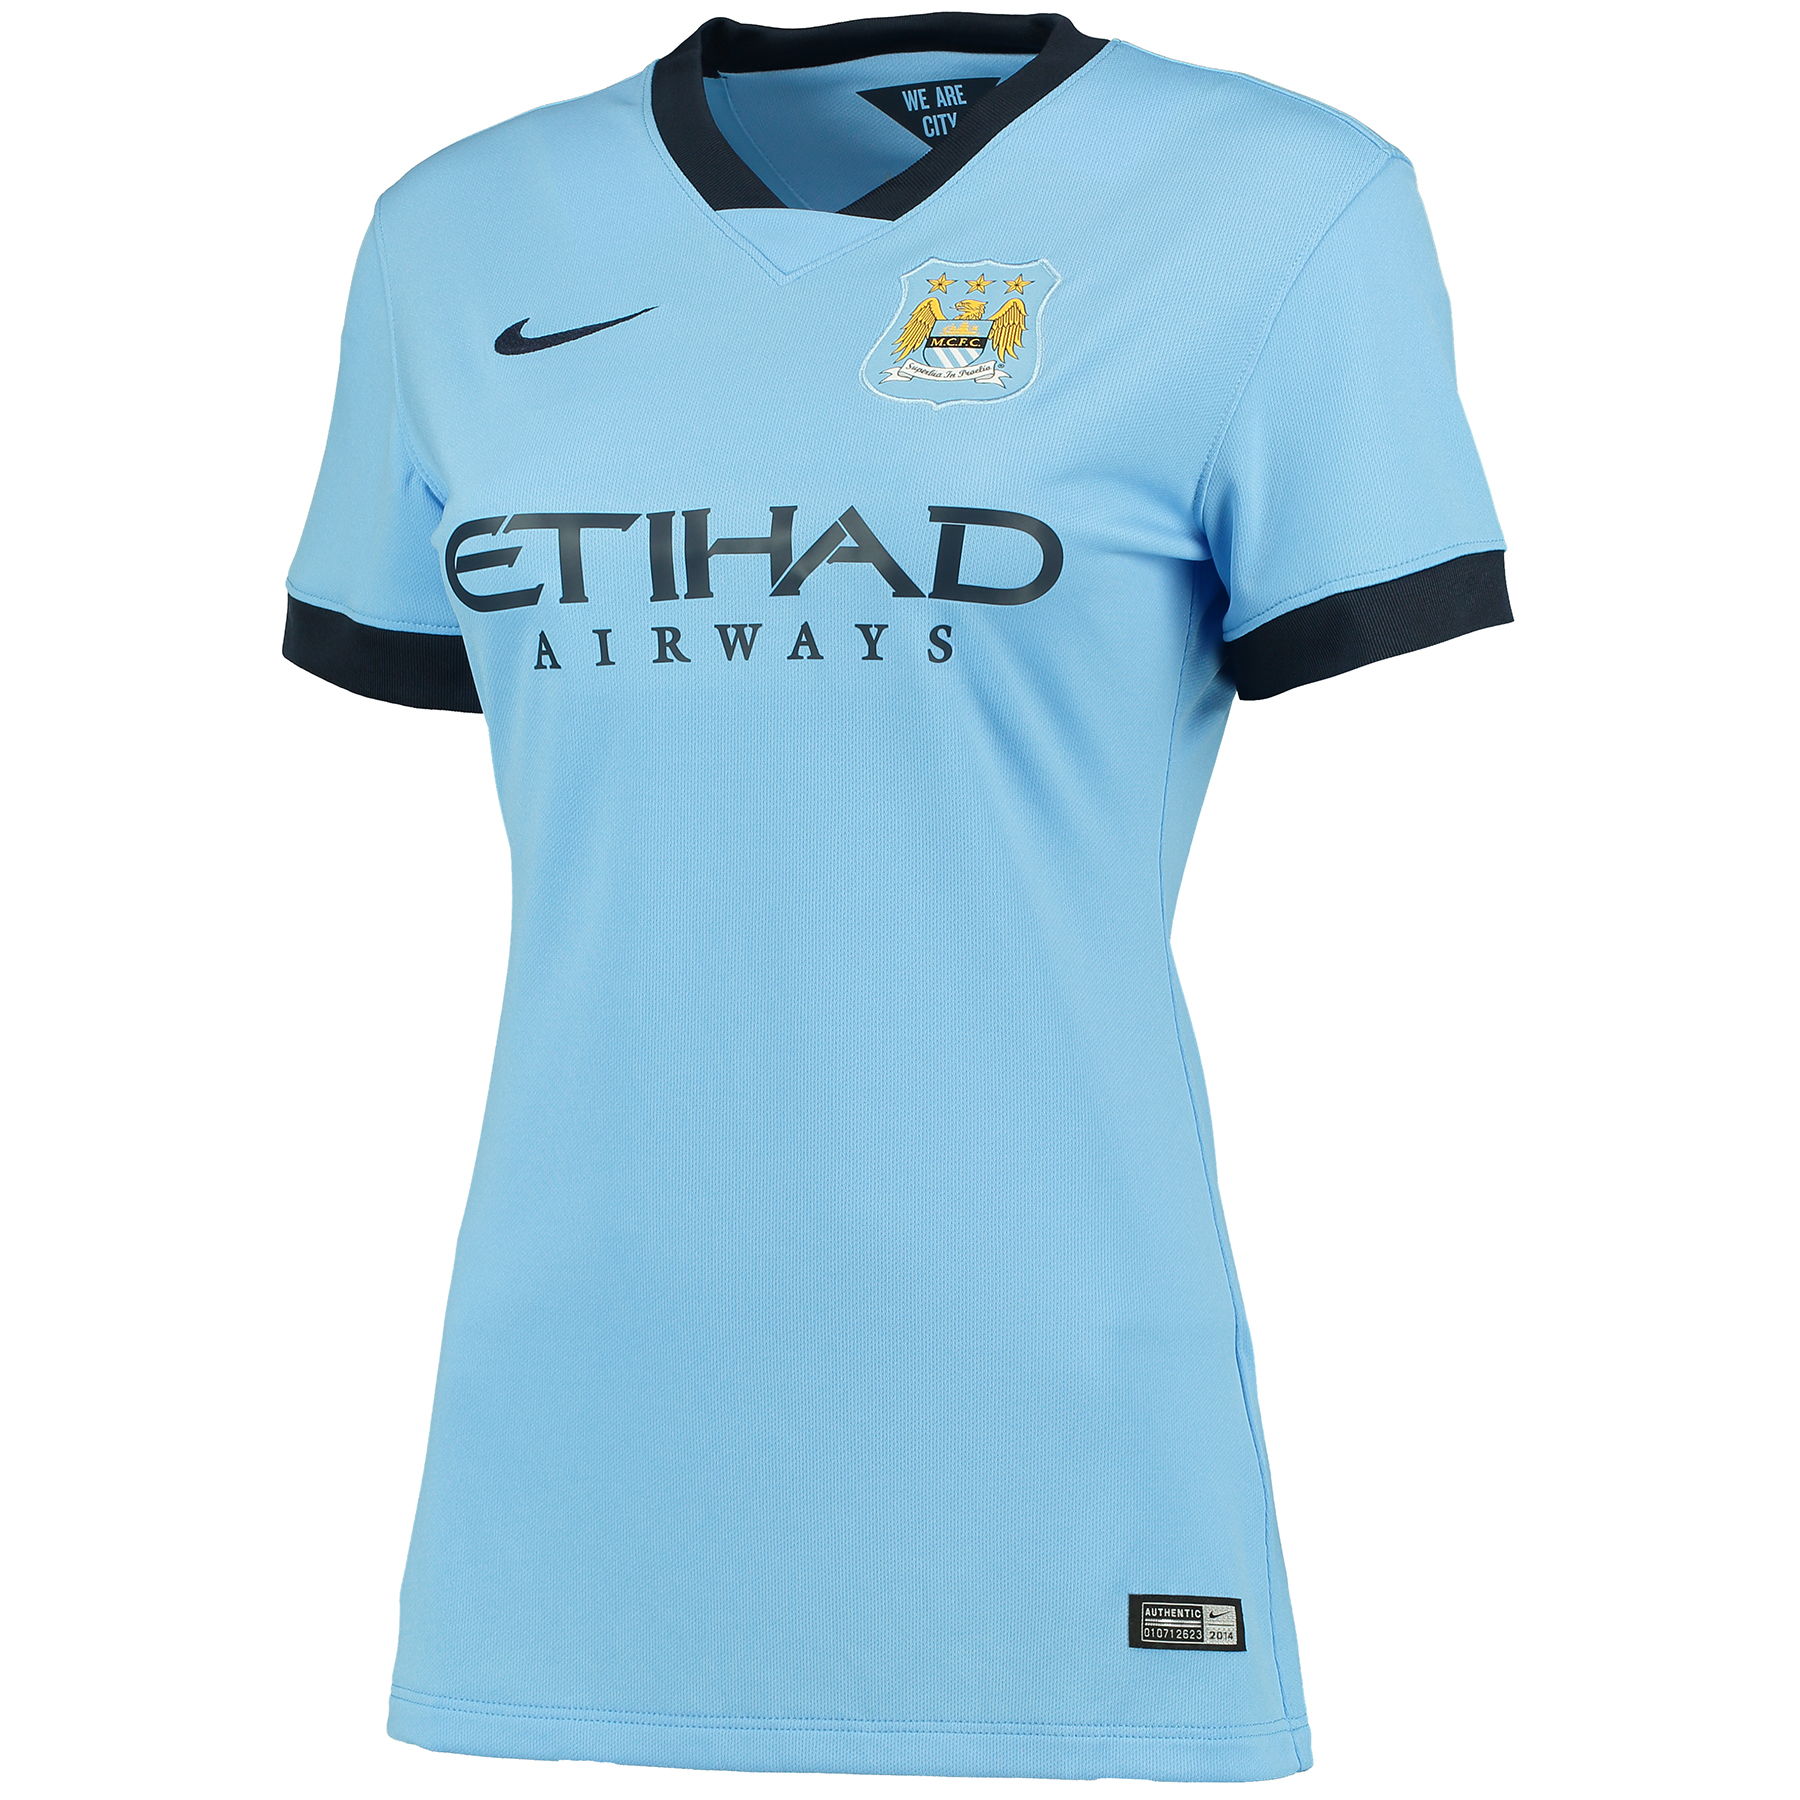 Manchester City Home Shirt 2014/15 - Womens Sky Blue